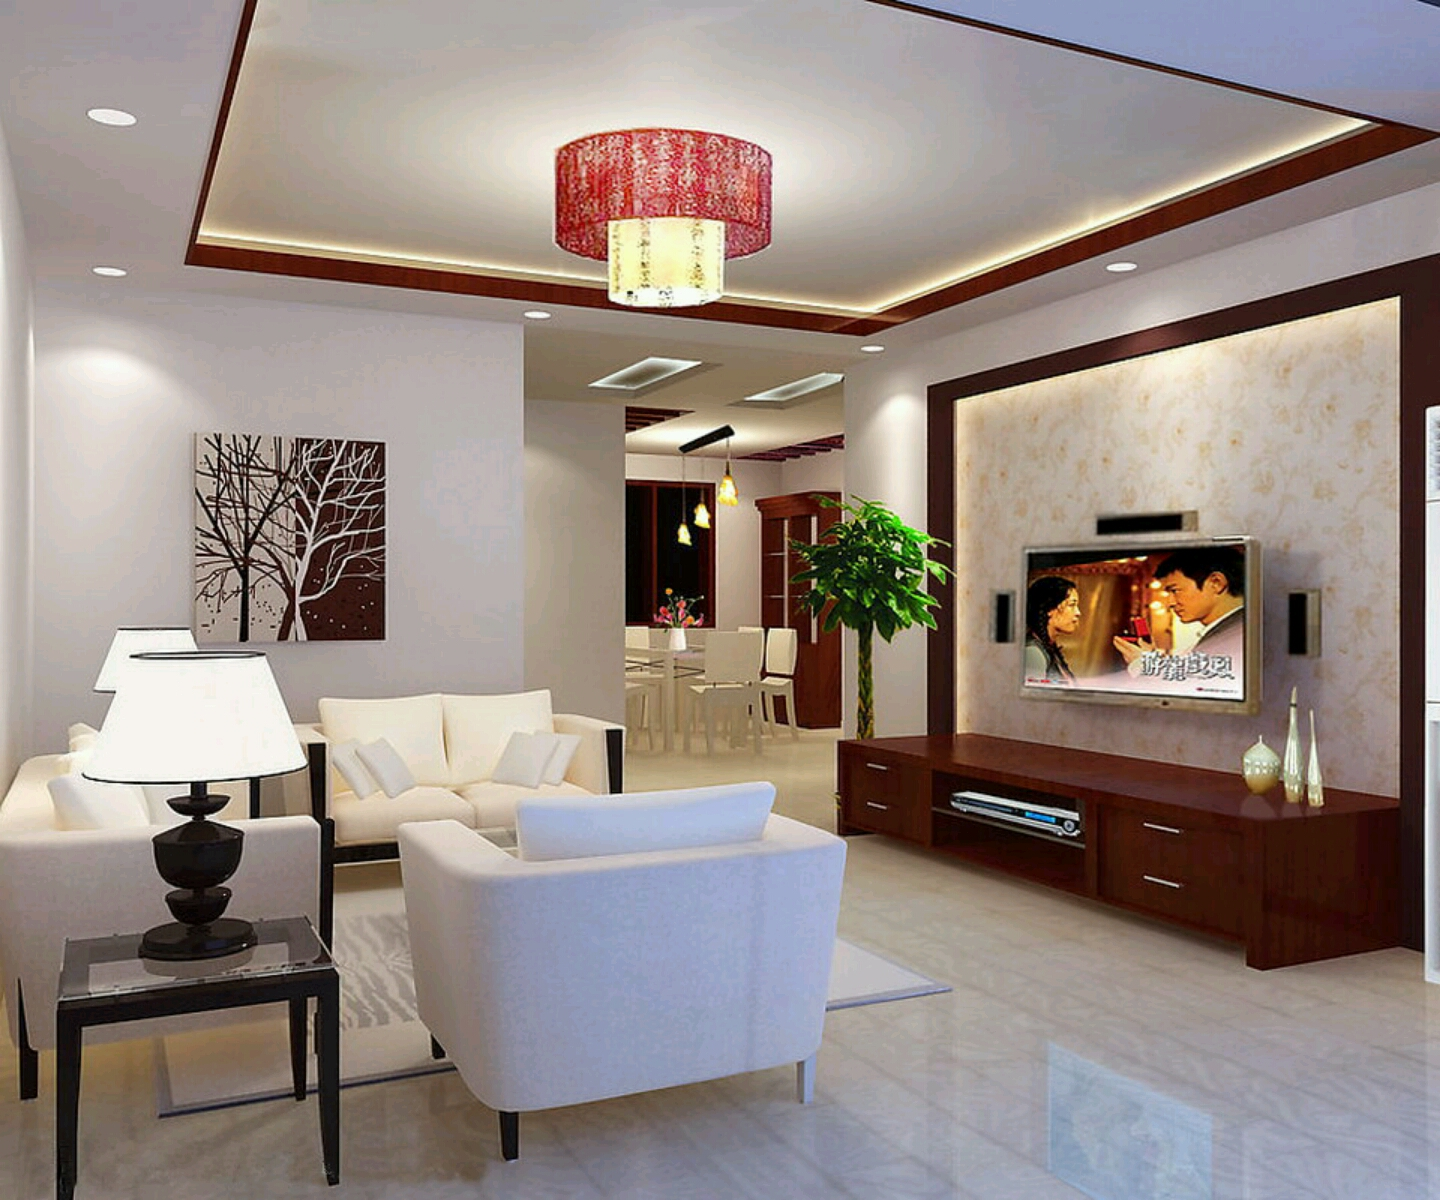 Modern interior decoration living rooms ceiling designs ...